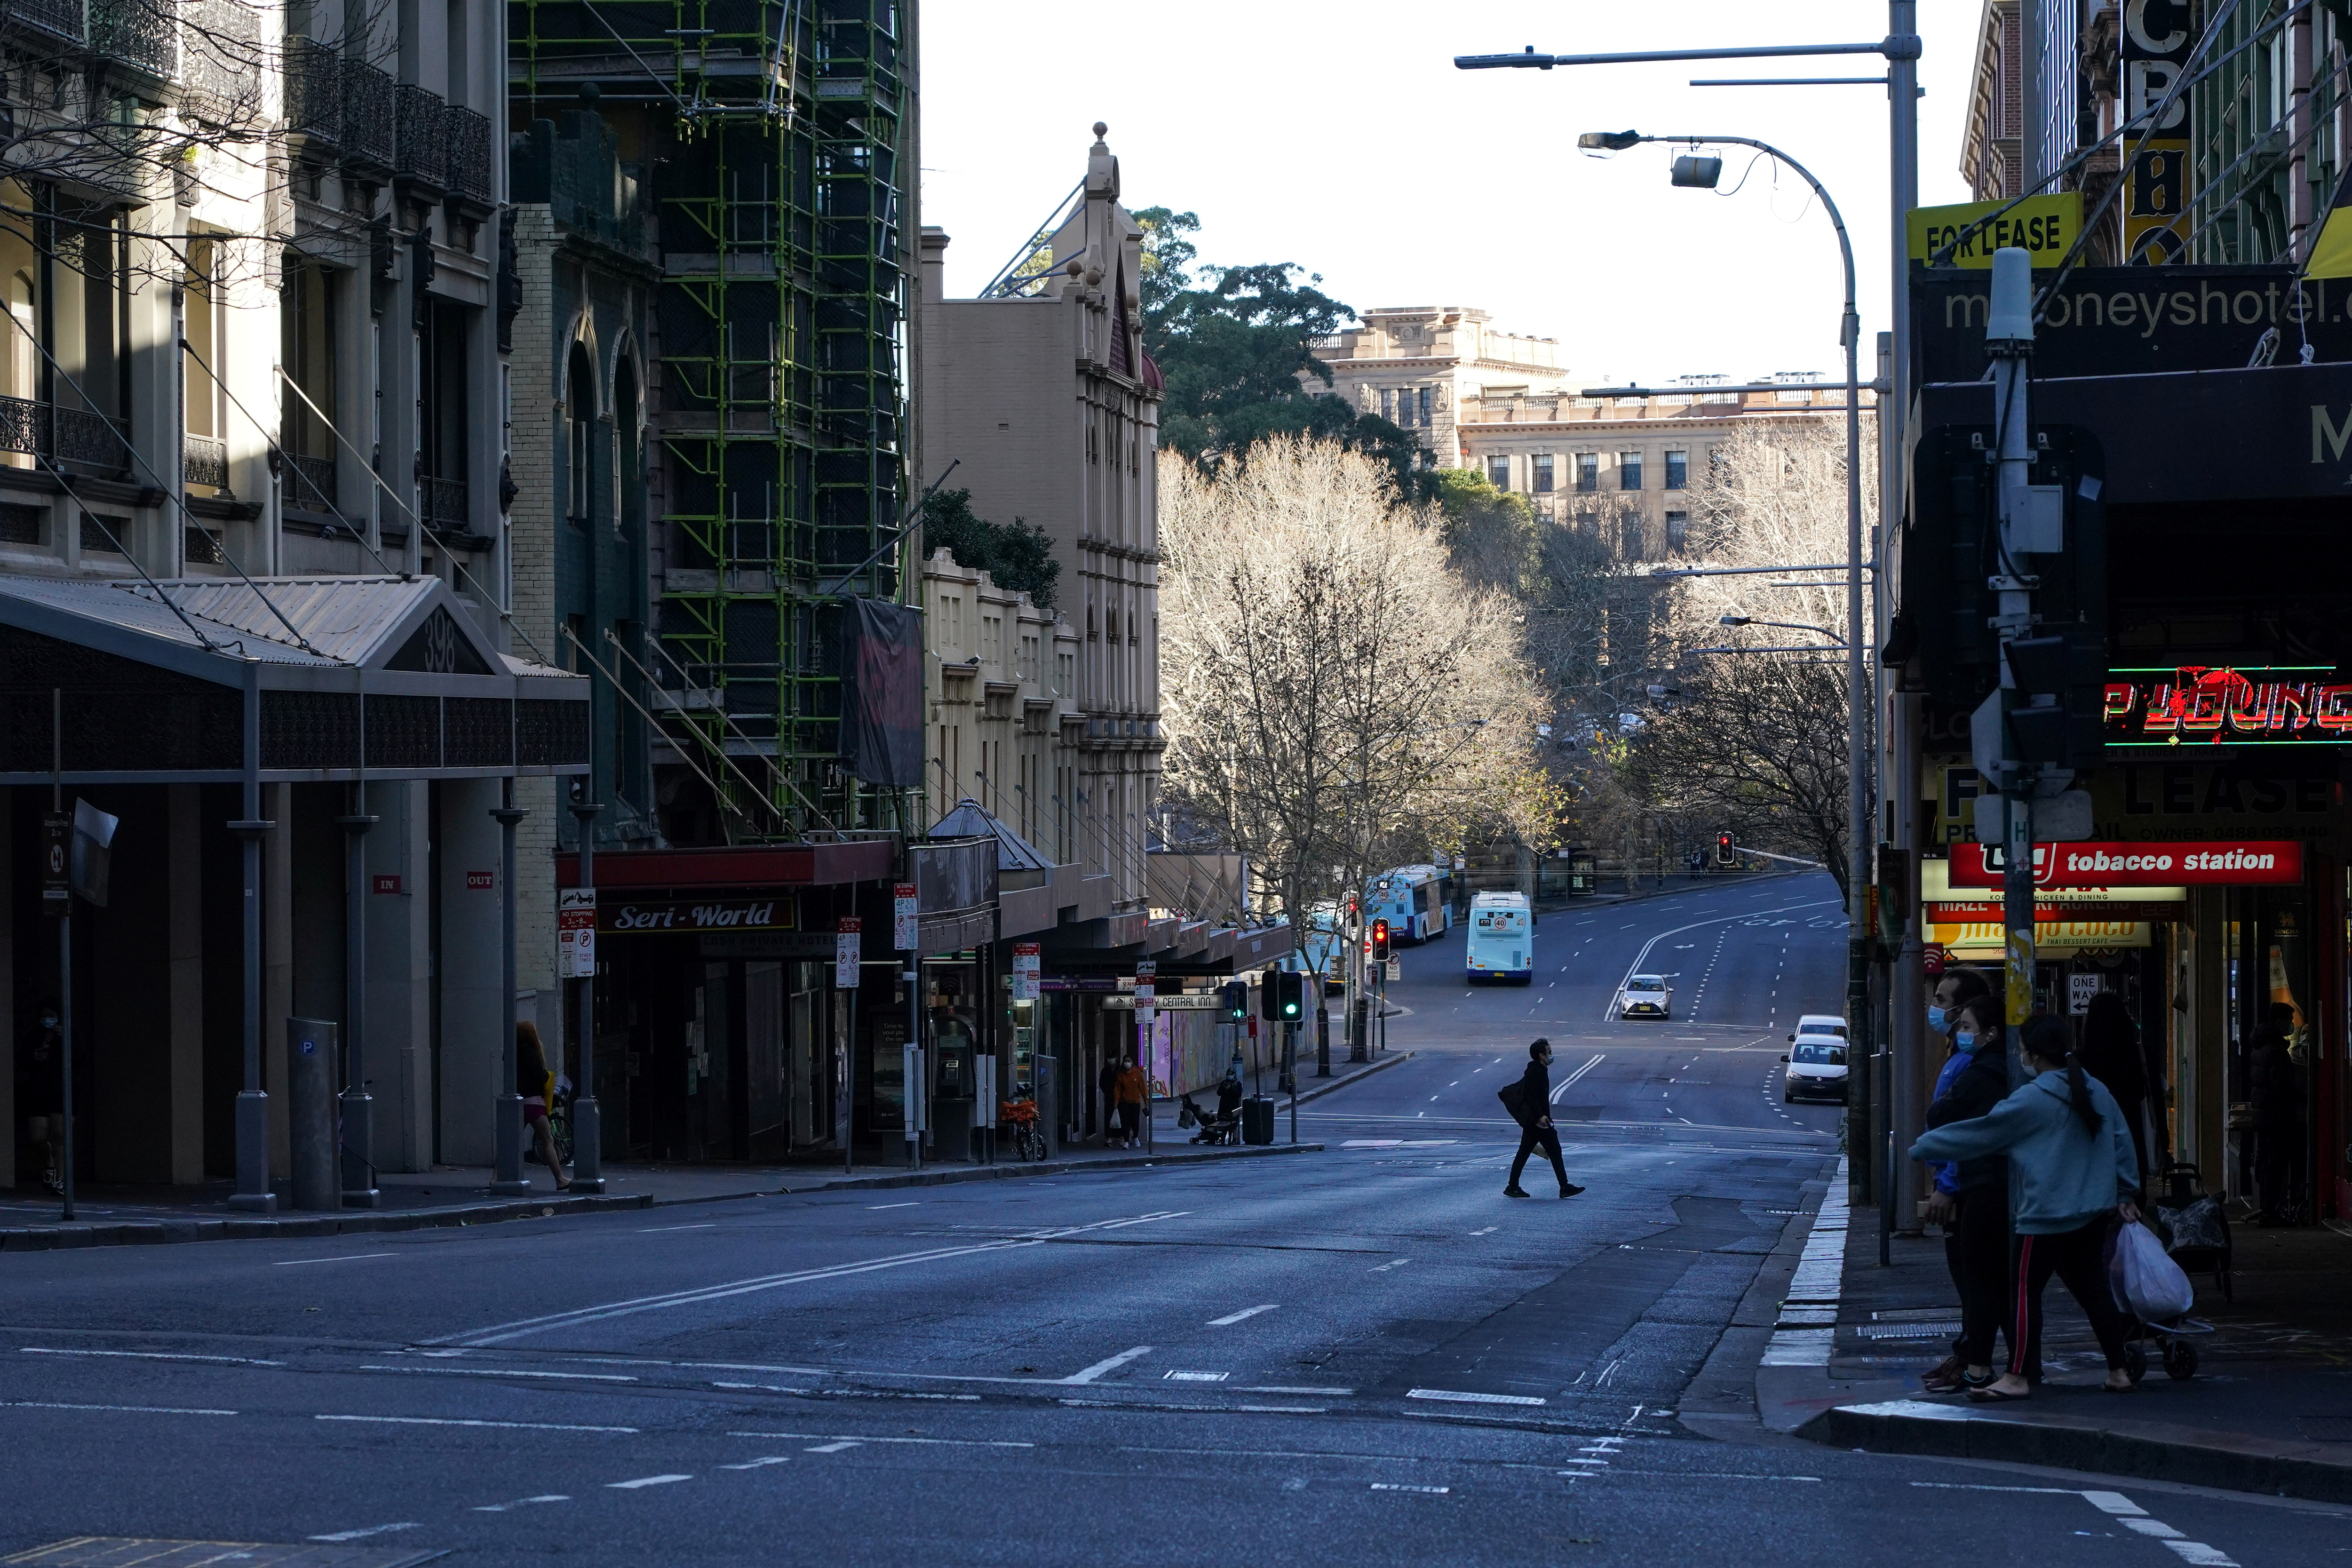 A pedestrian crosses an almost empty street in the City Centre during a lockdown to curb the spread of the coronavirus disease (COVID-19) outbreak in Sydney, Australia, July 21, 2021. REUTERS/Loren Elliott